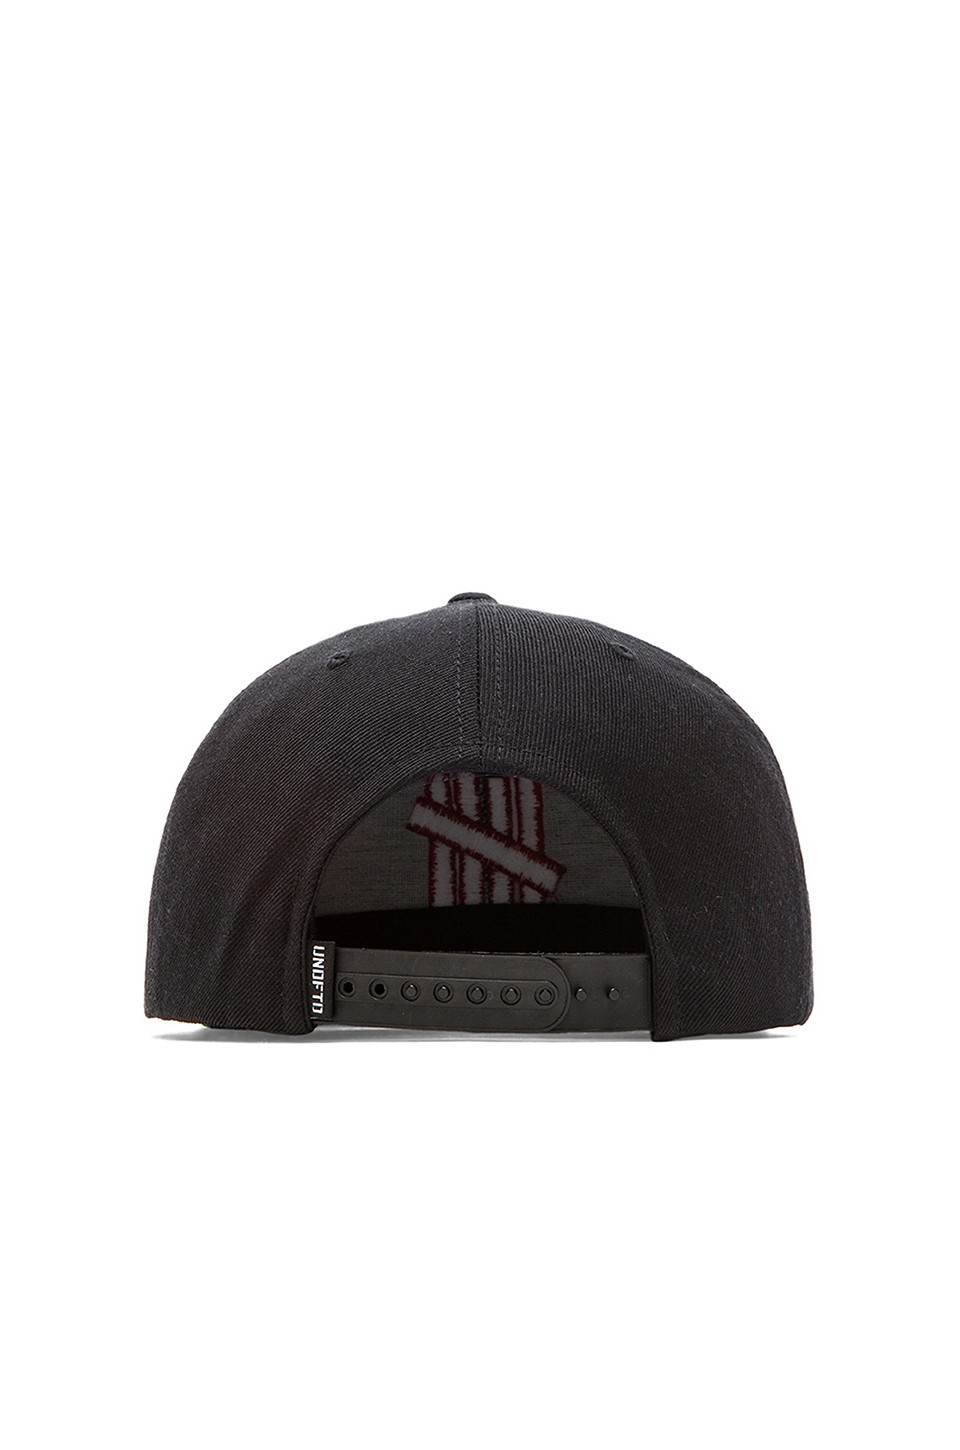 31ca8fe9d3f Lyst - Undefeated 5 Strike Snapback in Black for Men